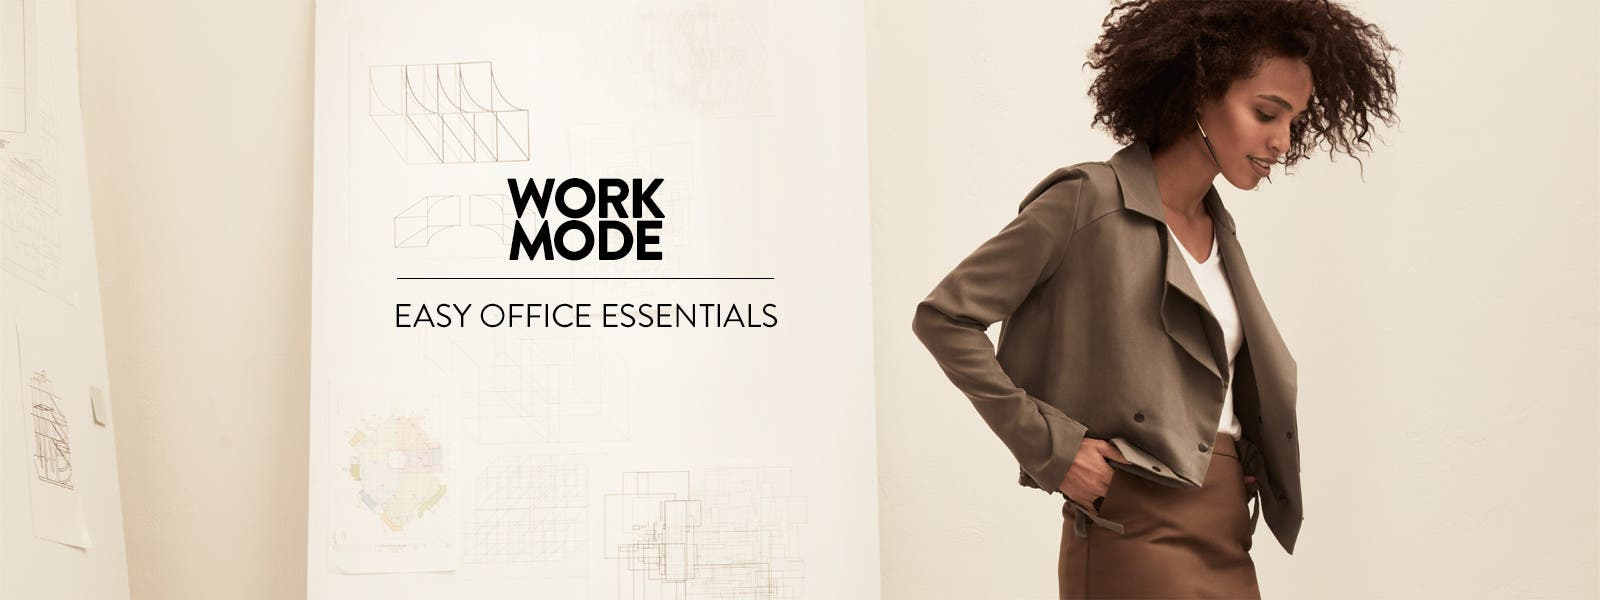 Work mode: easy office essentials.